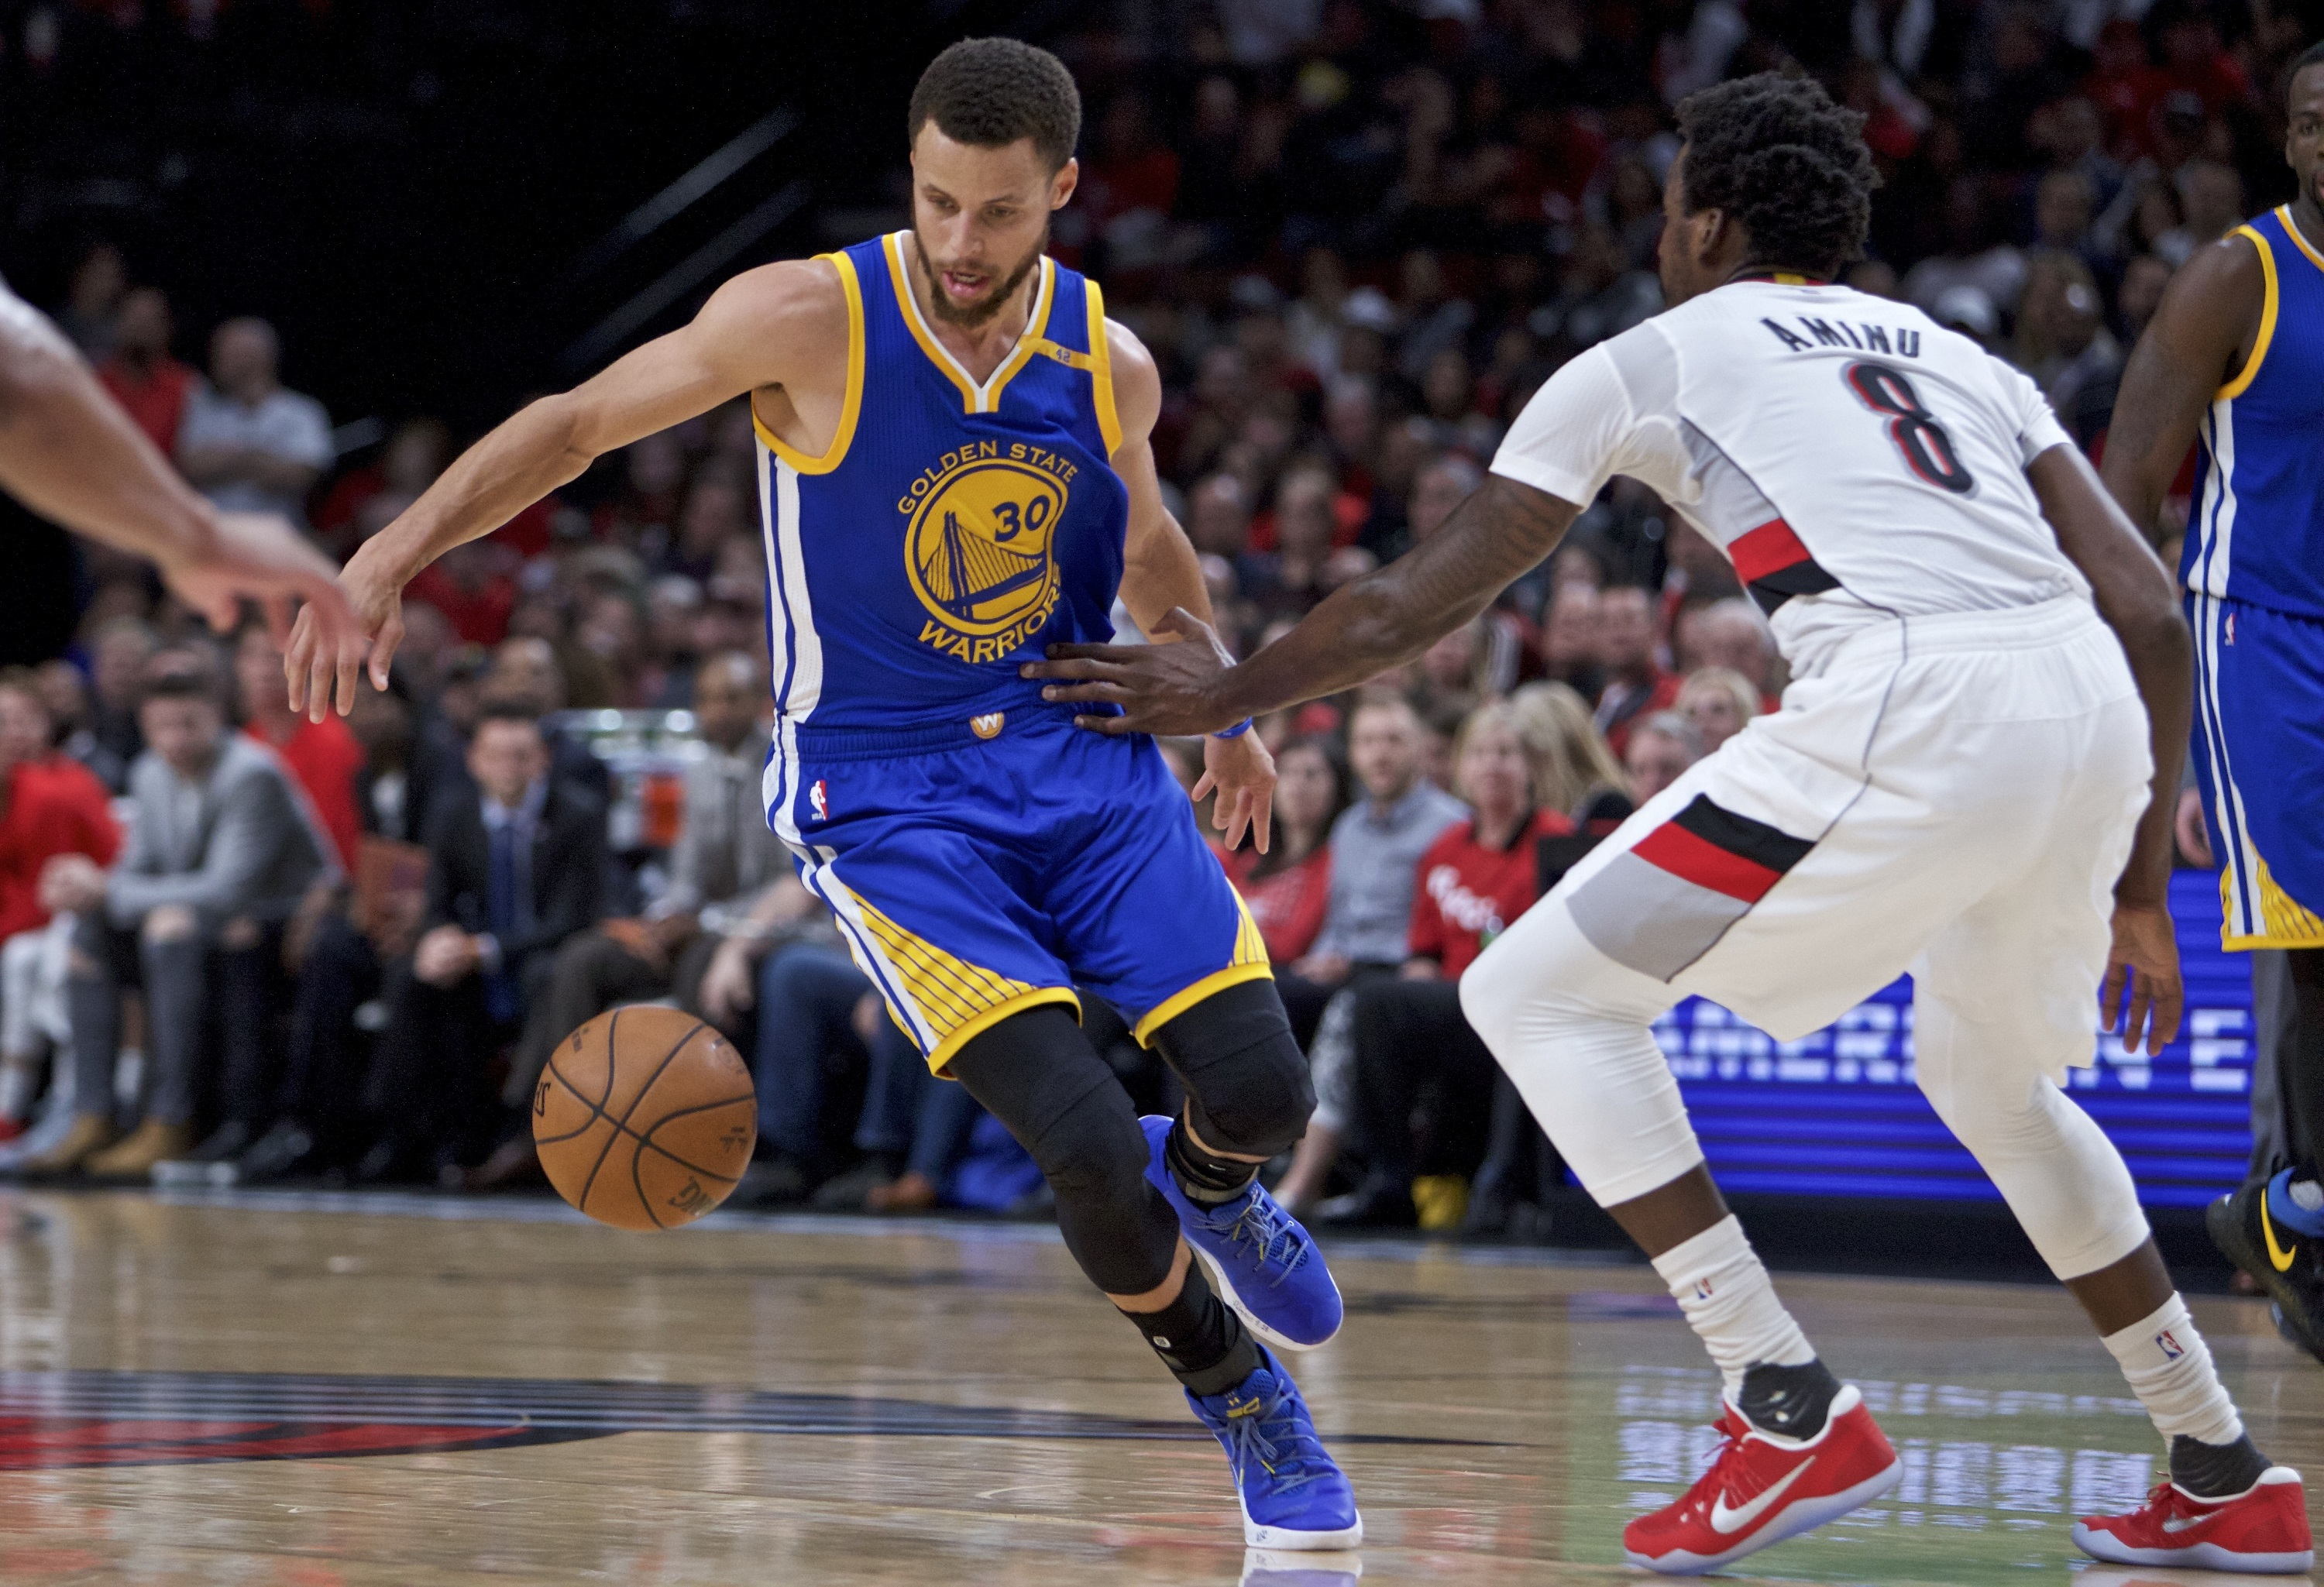 Basket - NBA - Sans pitié, les Warriors dévorent Portland et filent au 2e tour